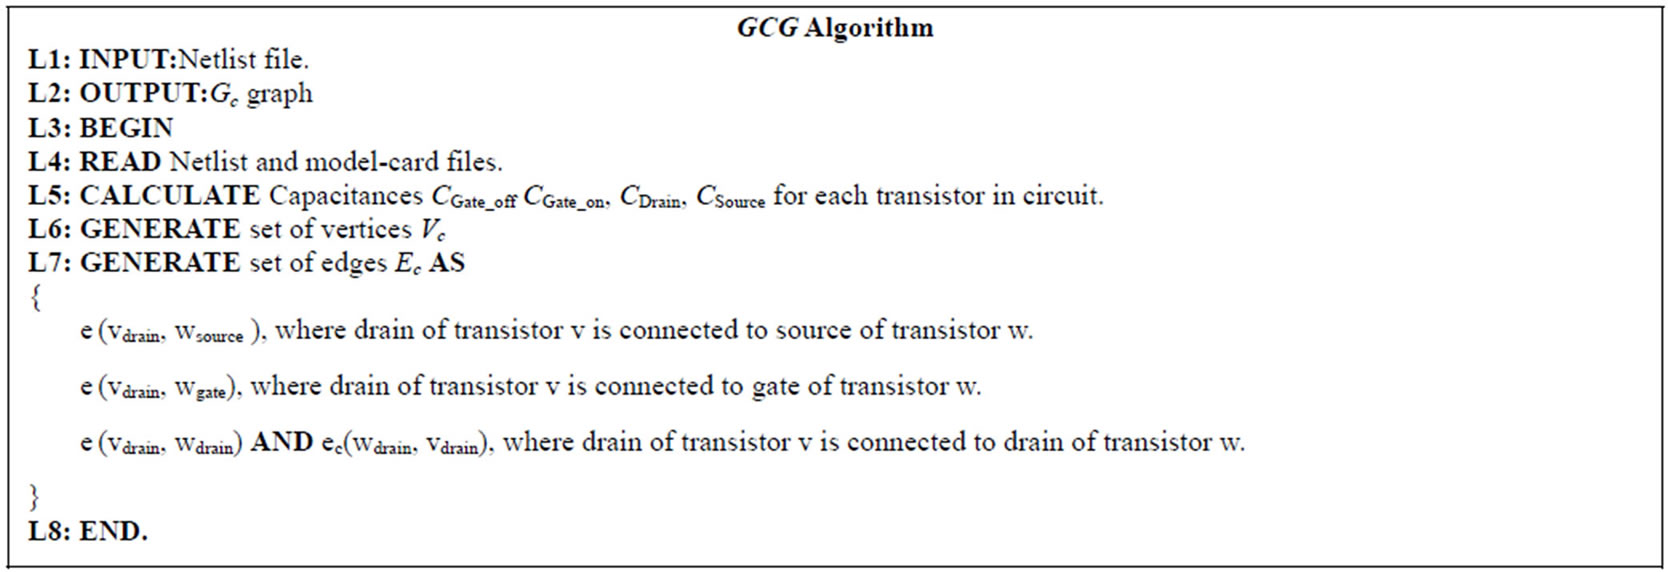 Graph Modeling For Static Timing Analysis At Transistor Level In 10 Second Fan On Delay Time By Figure 2 Gcg Algorithm Of Gc Generation